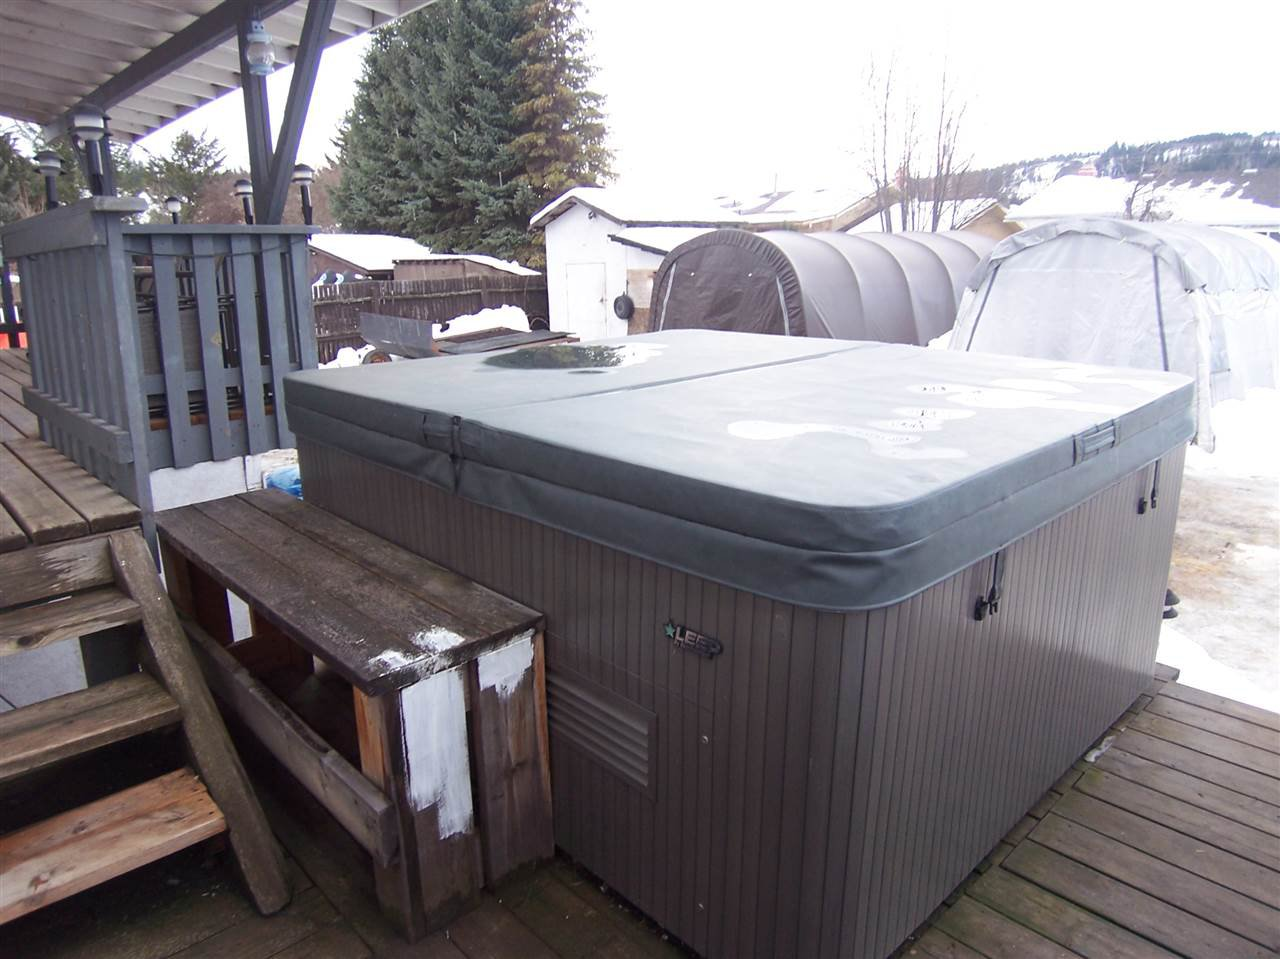 Photo 13: Photos: 484 RITCHIE Avenue: Quesnel - Town House for sale (Quesnel (Zone 28))  : MLS®# R2029328